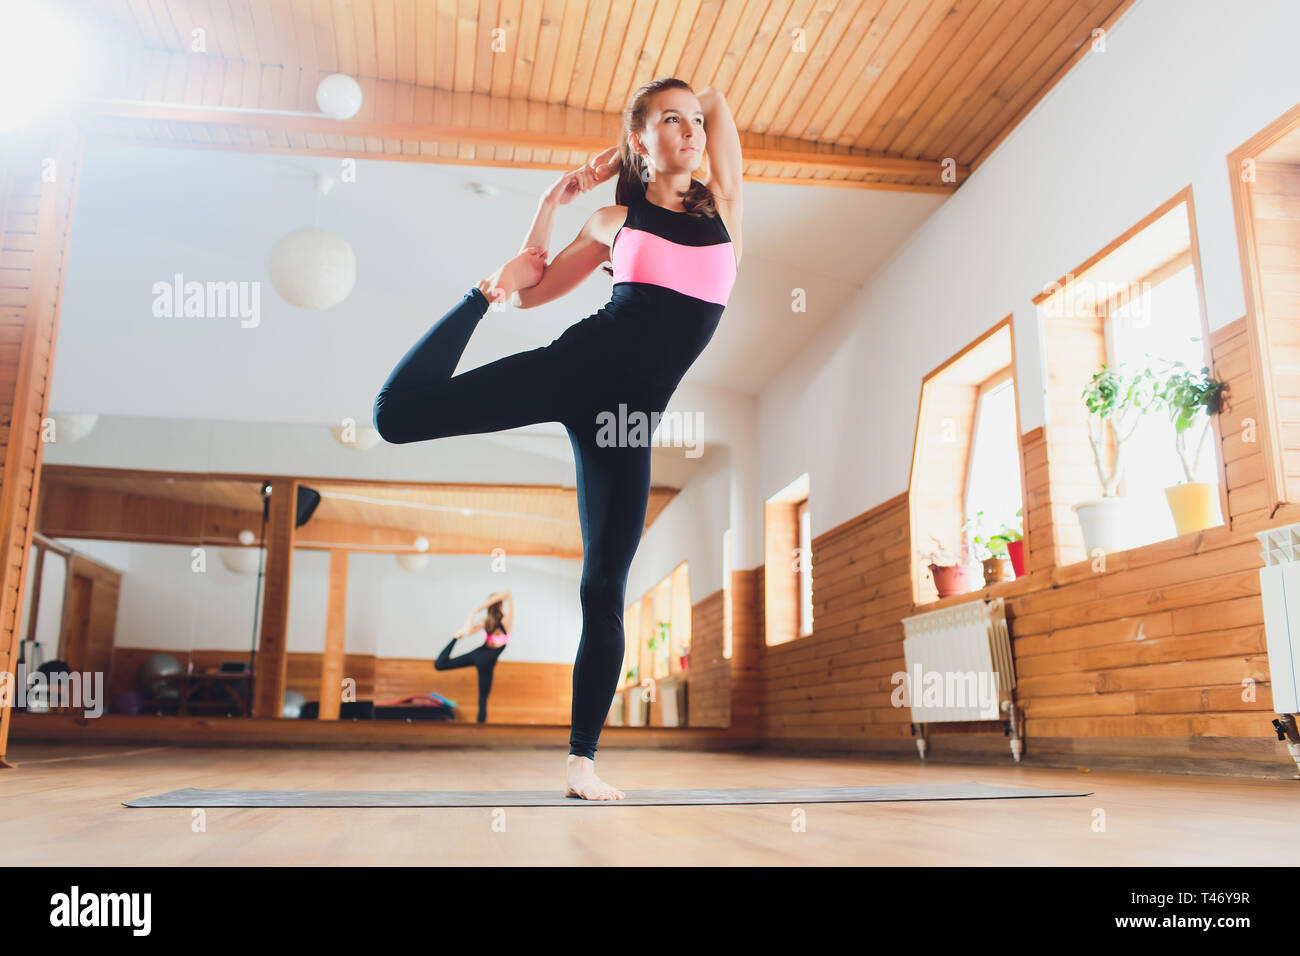 Portrait of sporty beautiful blond young woman in sportswear working out indoors, doing balance back bend, Natarajasana, Lord of the Dance posture - Stock Image